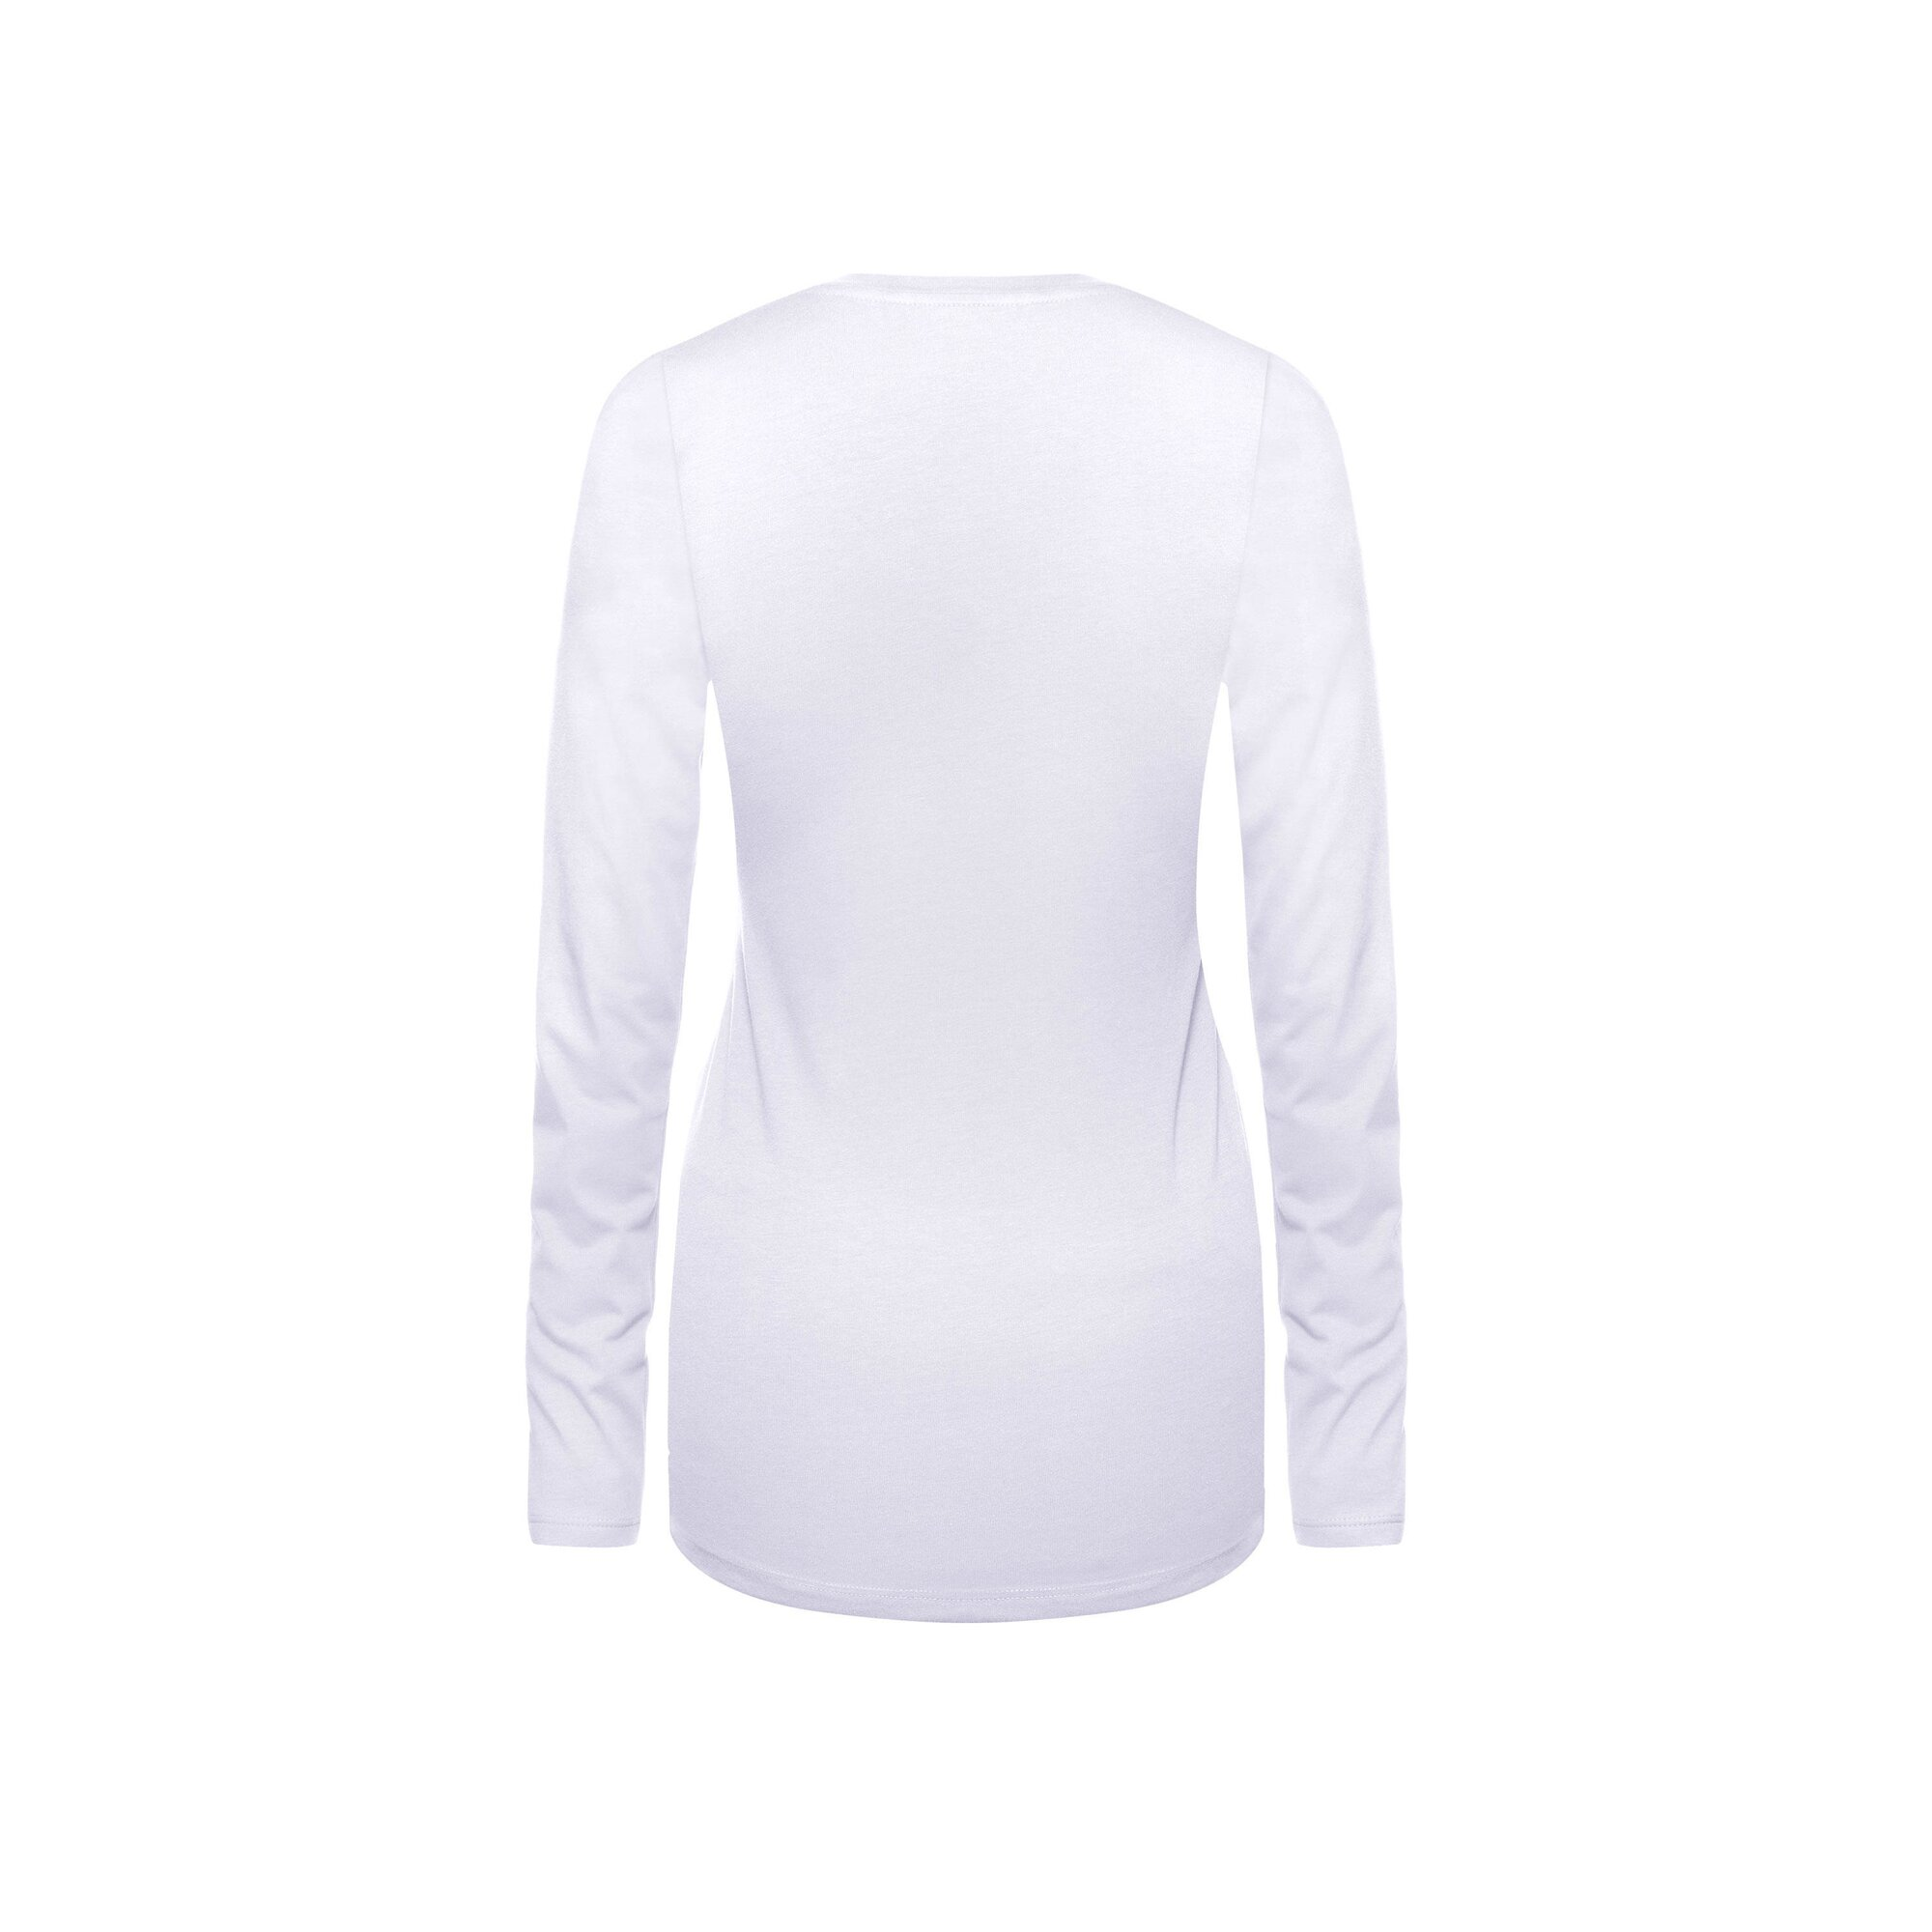 bellybutton-shirt-laure, 24.90 EUR @ babywalz-de